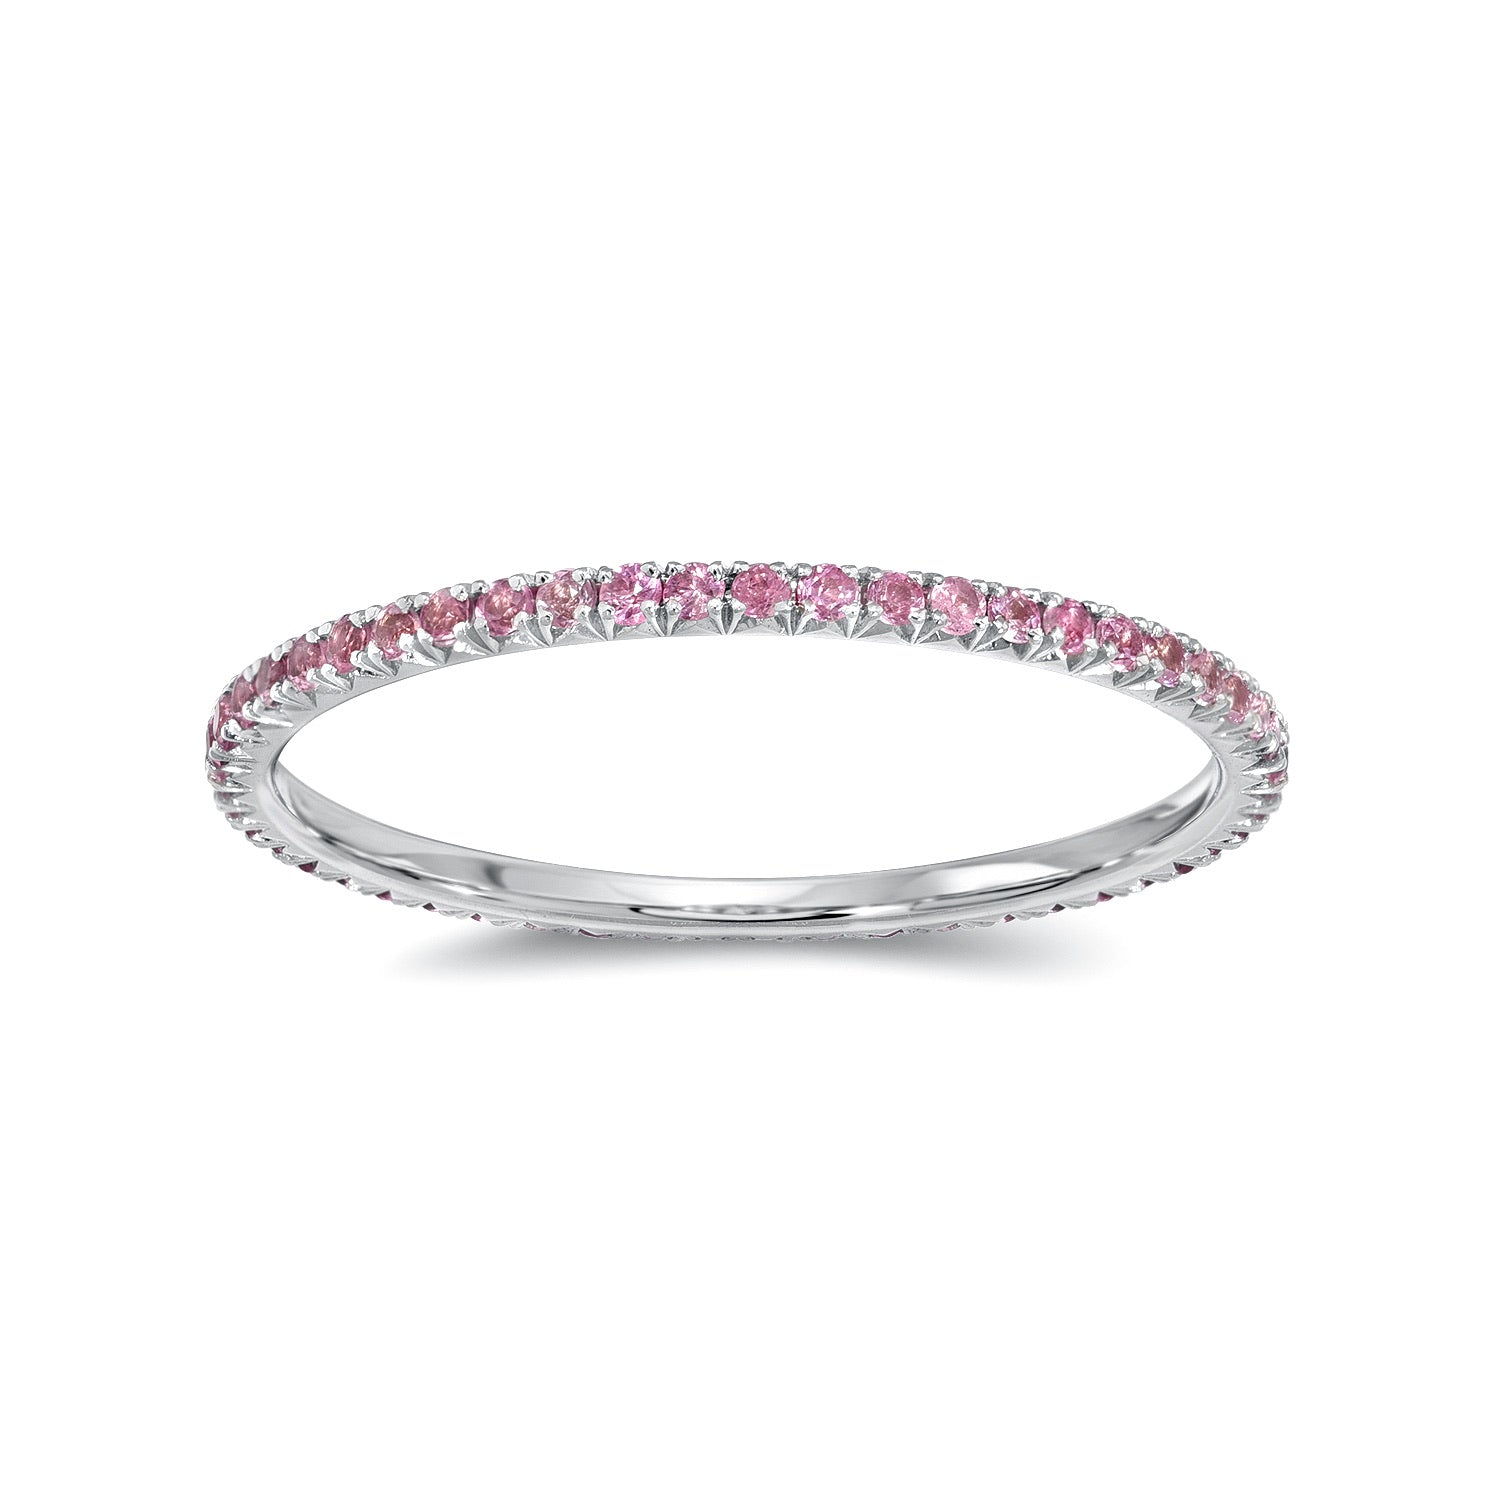 Stackable rings, eternity bands